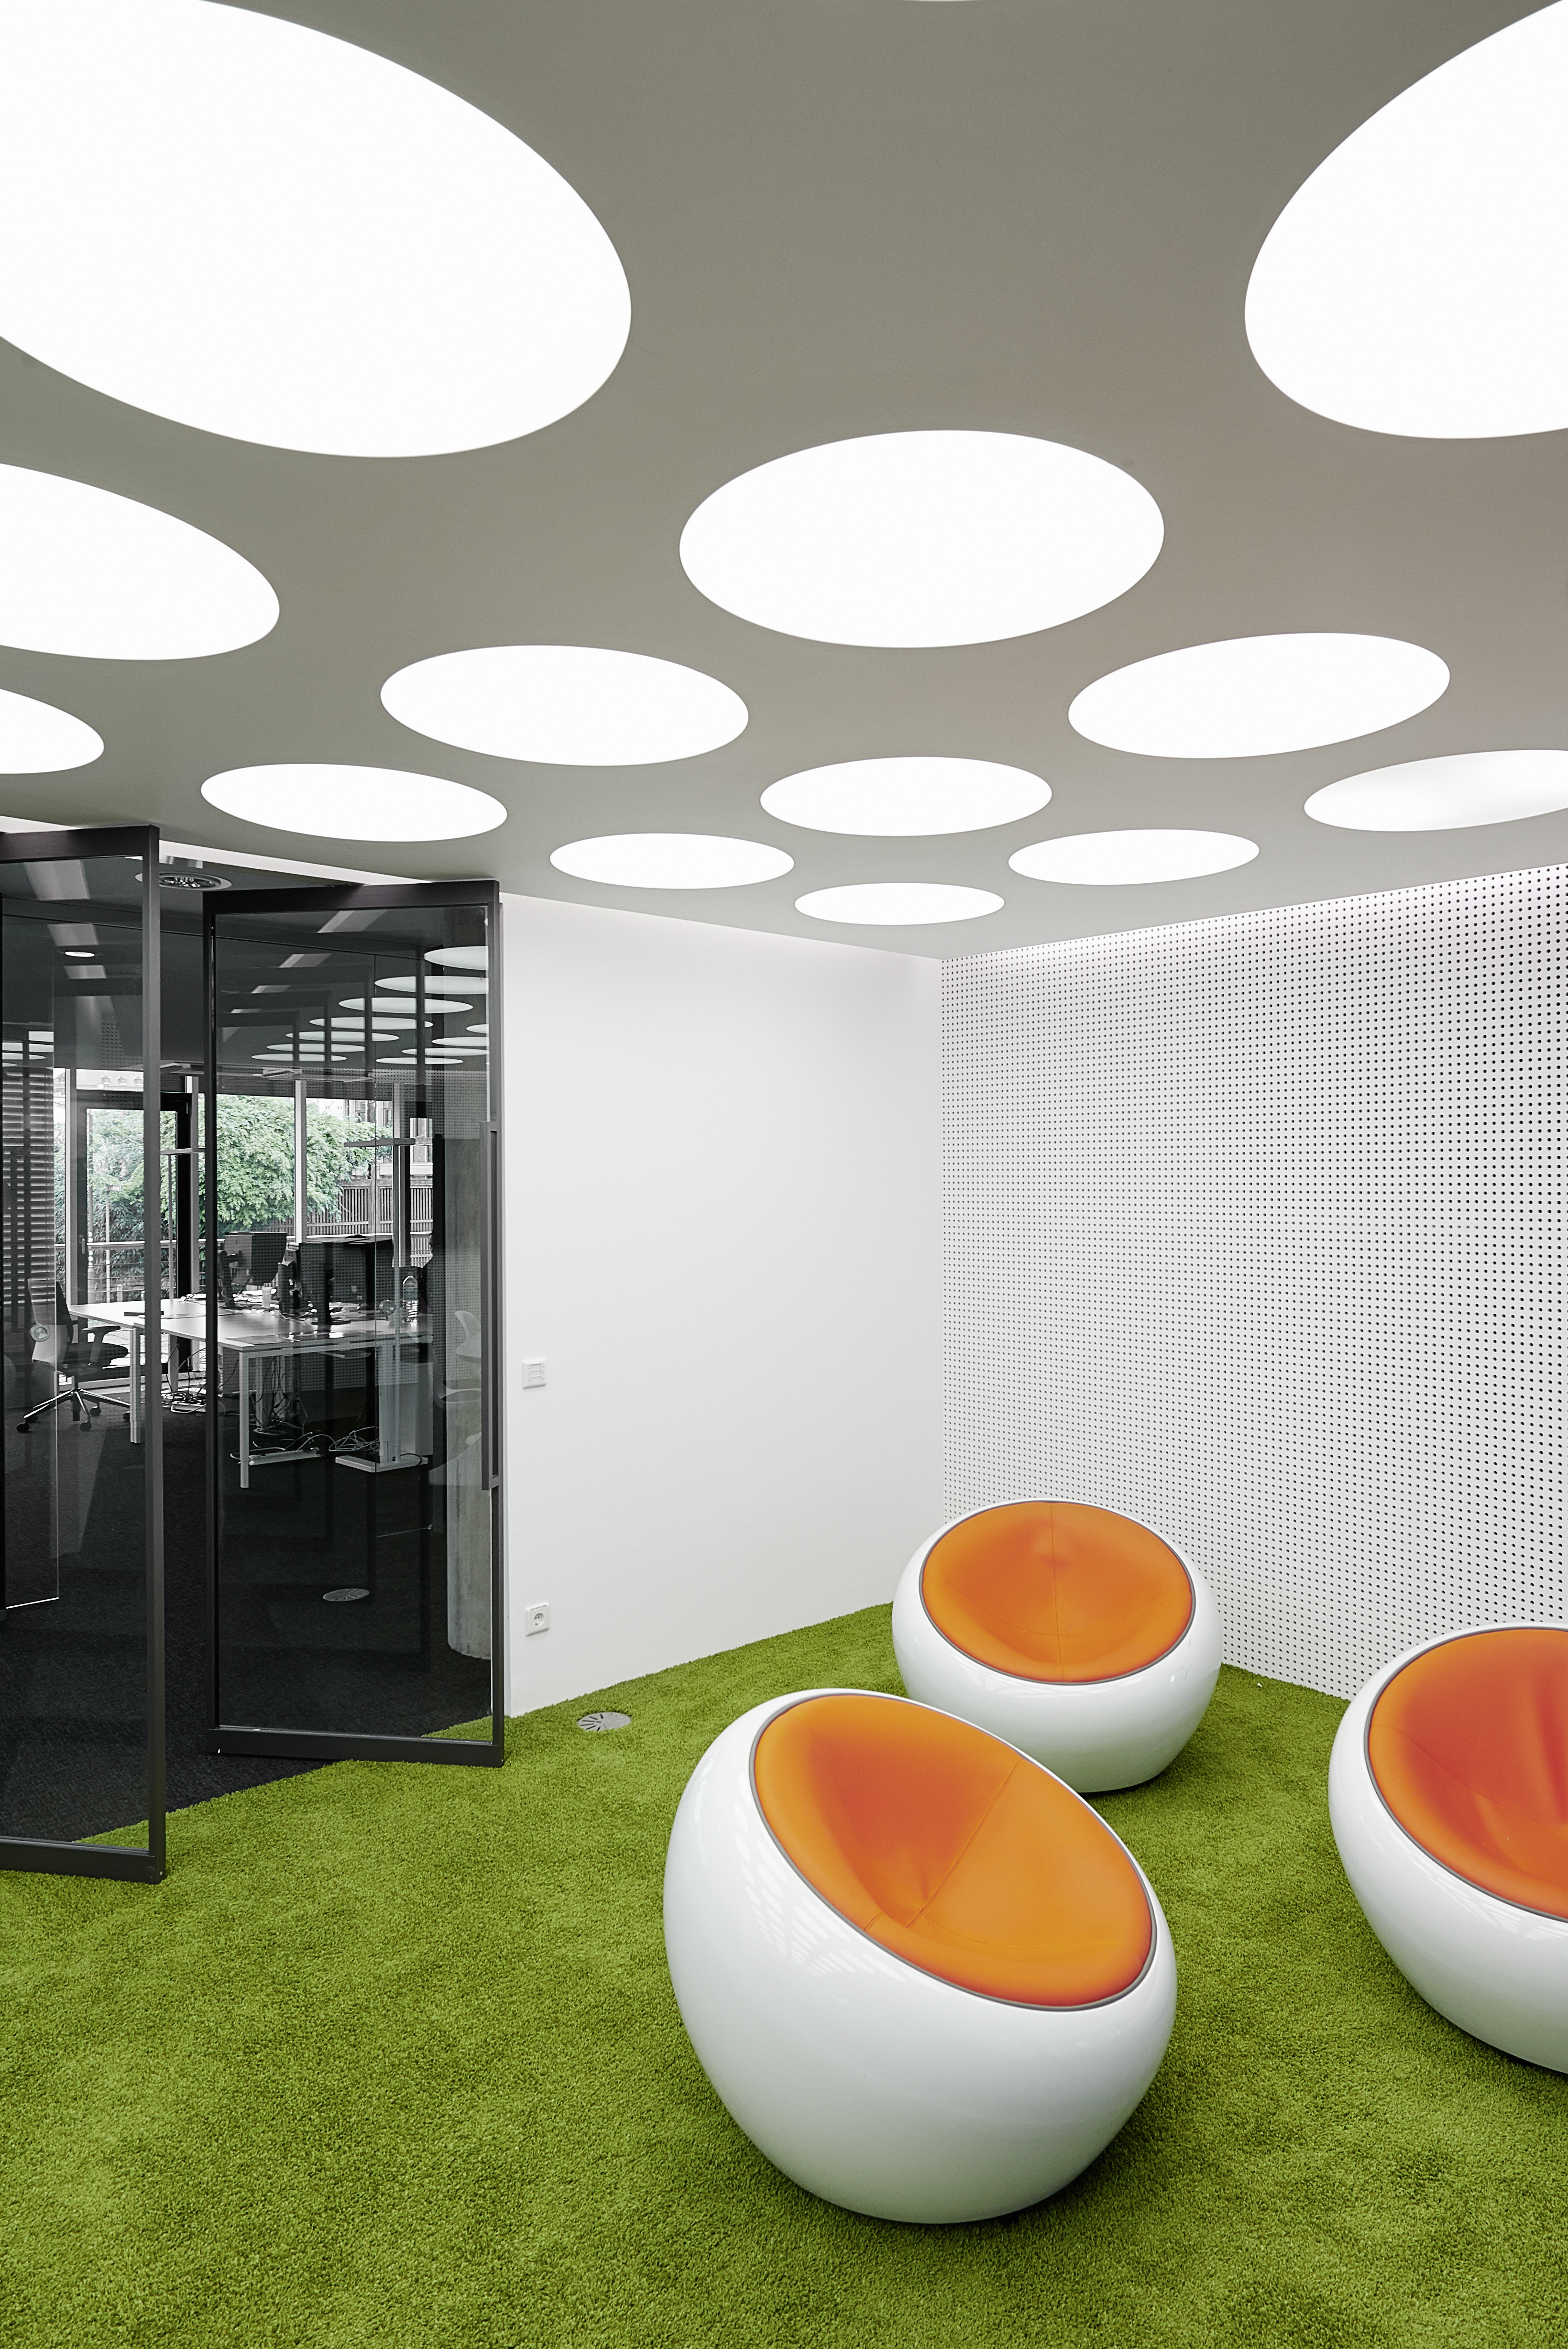 Beneath large circle lighting cutouts in the ceiling, we see another trio of orange-cushion egg chairs on the putting green-like carpeting.